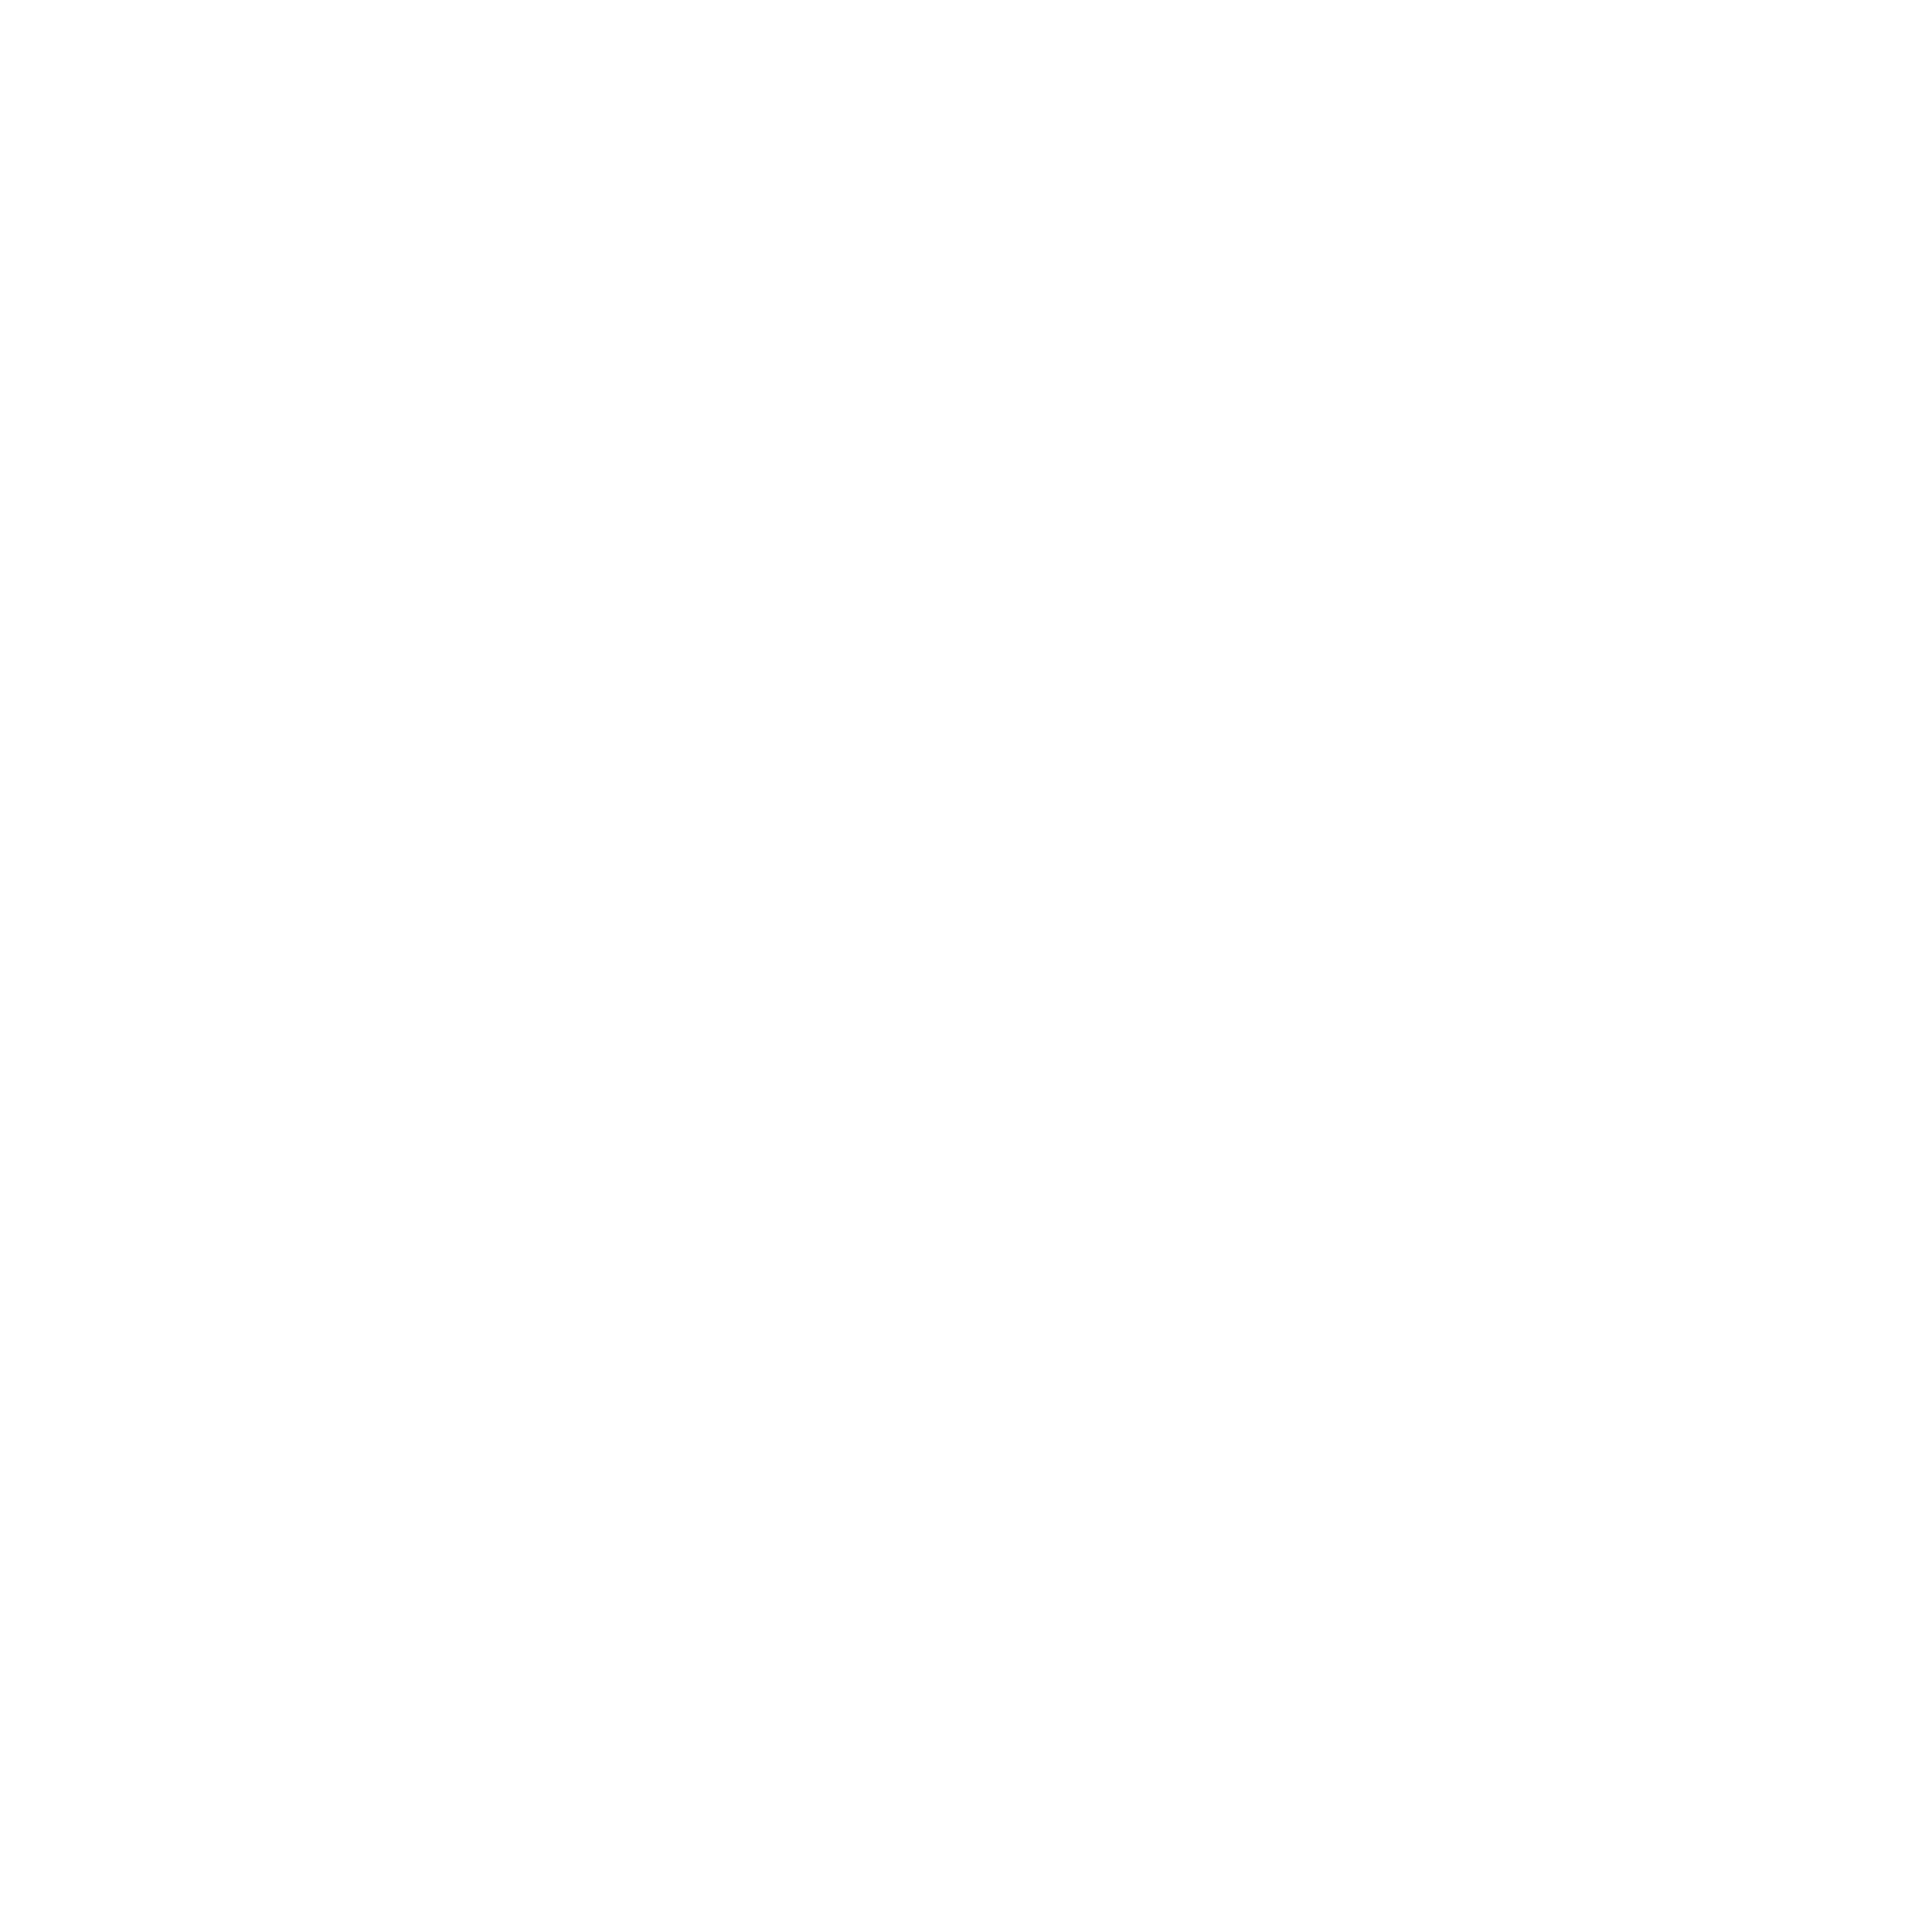 Eventbrite icon in PNG, ICO or ICNS.